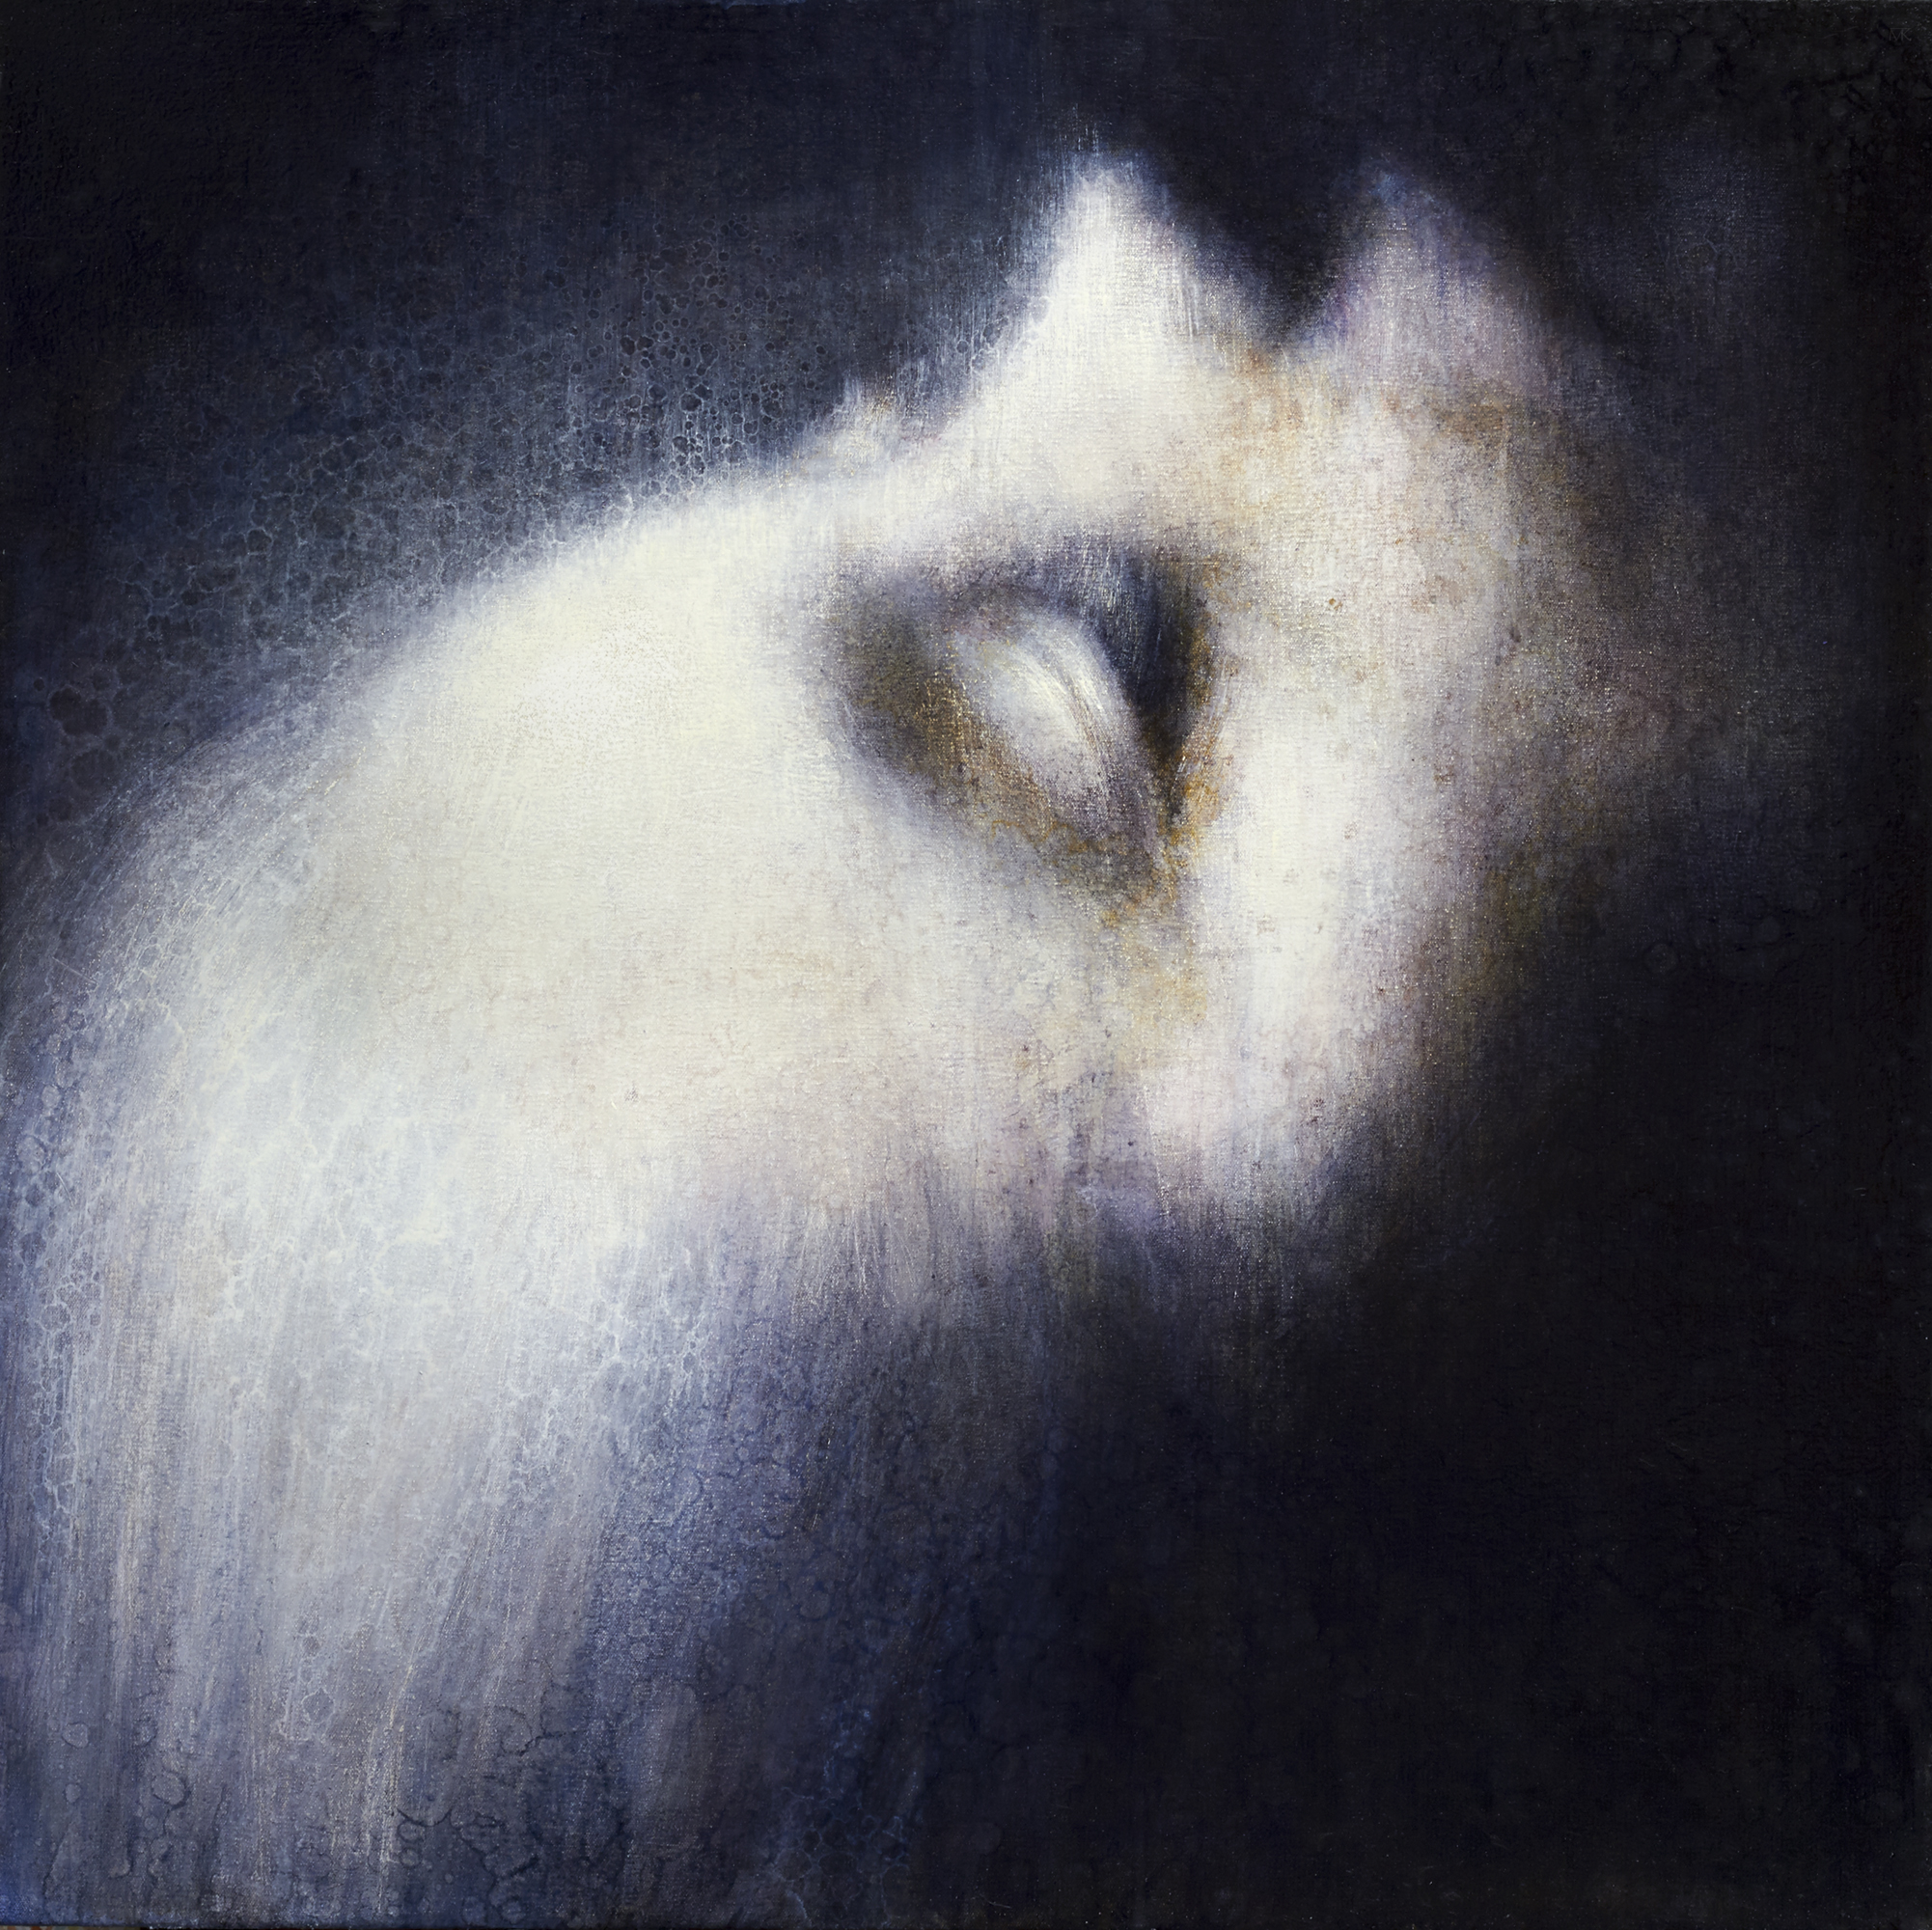 "Maya Kulenovic: OPIATE, 2011- 2012, oil on canvas, 36"" x 36"" (91.5cm x 91.5cm). 'Faces' Series."